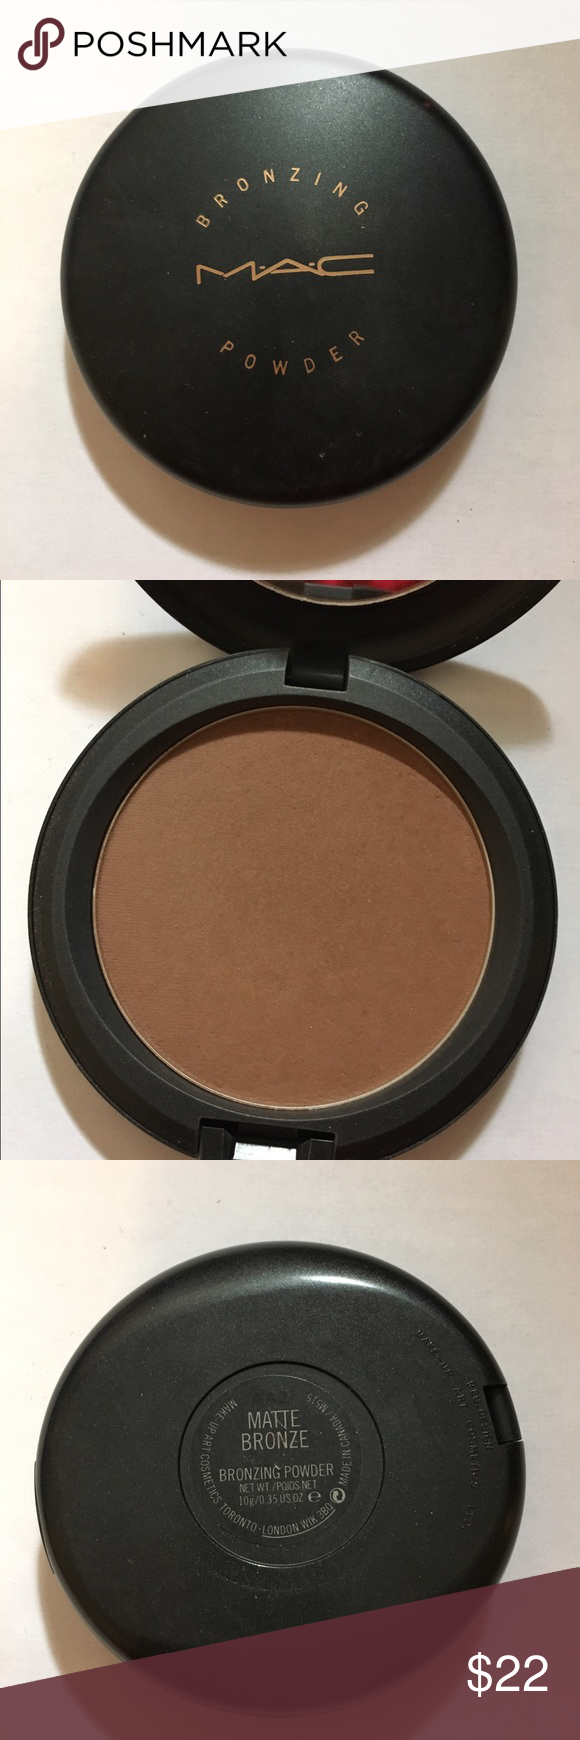 MAC bronzer Matte Bronze Slightly used. Awesome contour